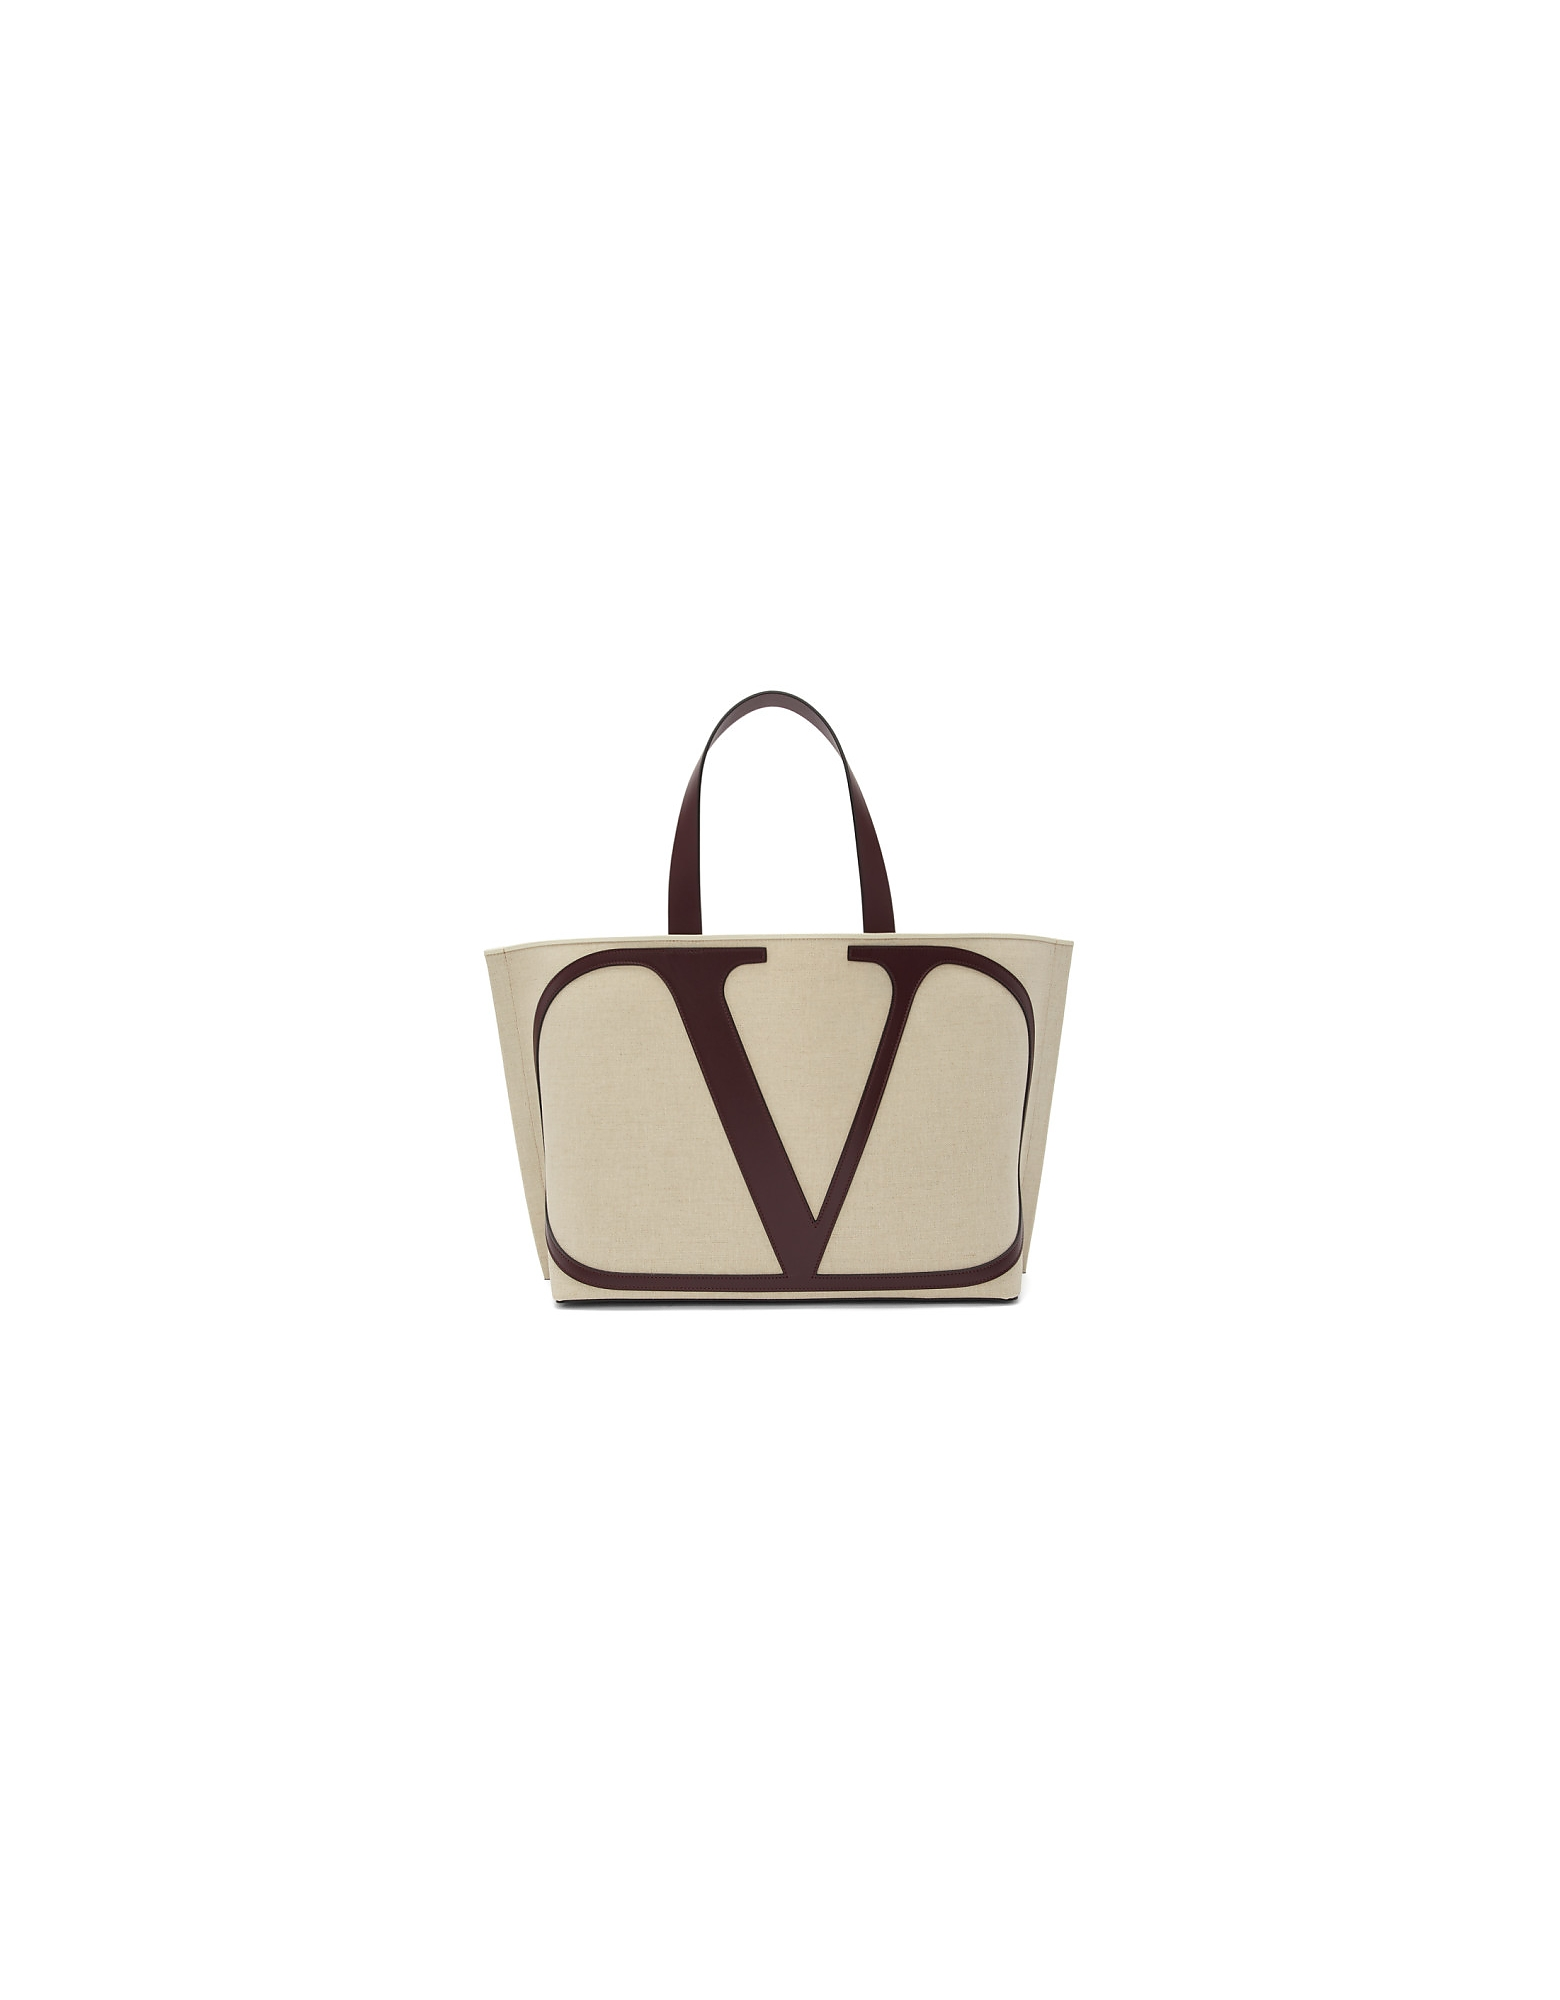 Valentino Designer Handbags, Beige and Purple Valentino Garavani Large VLogo Beach Tote